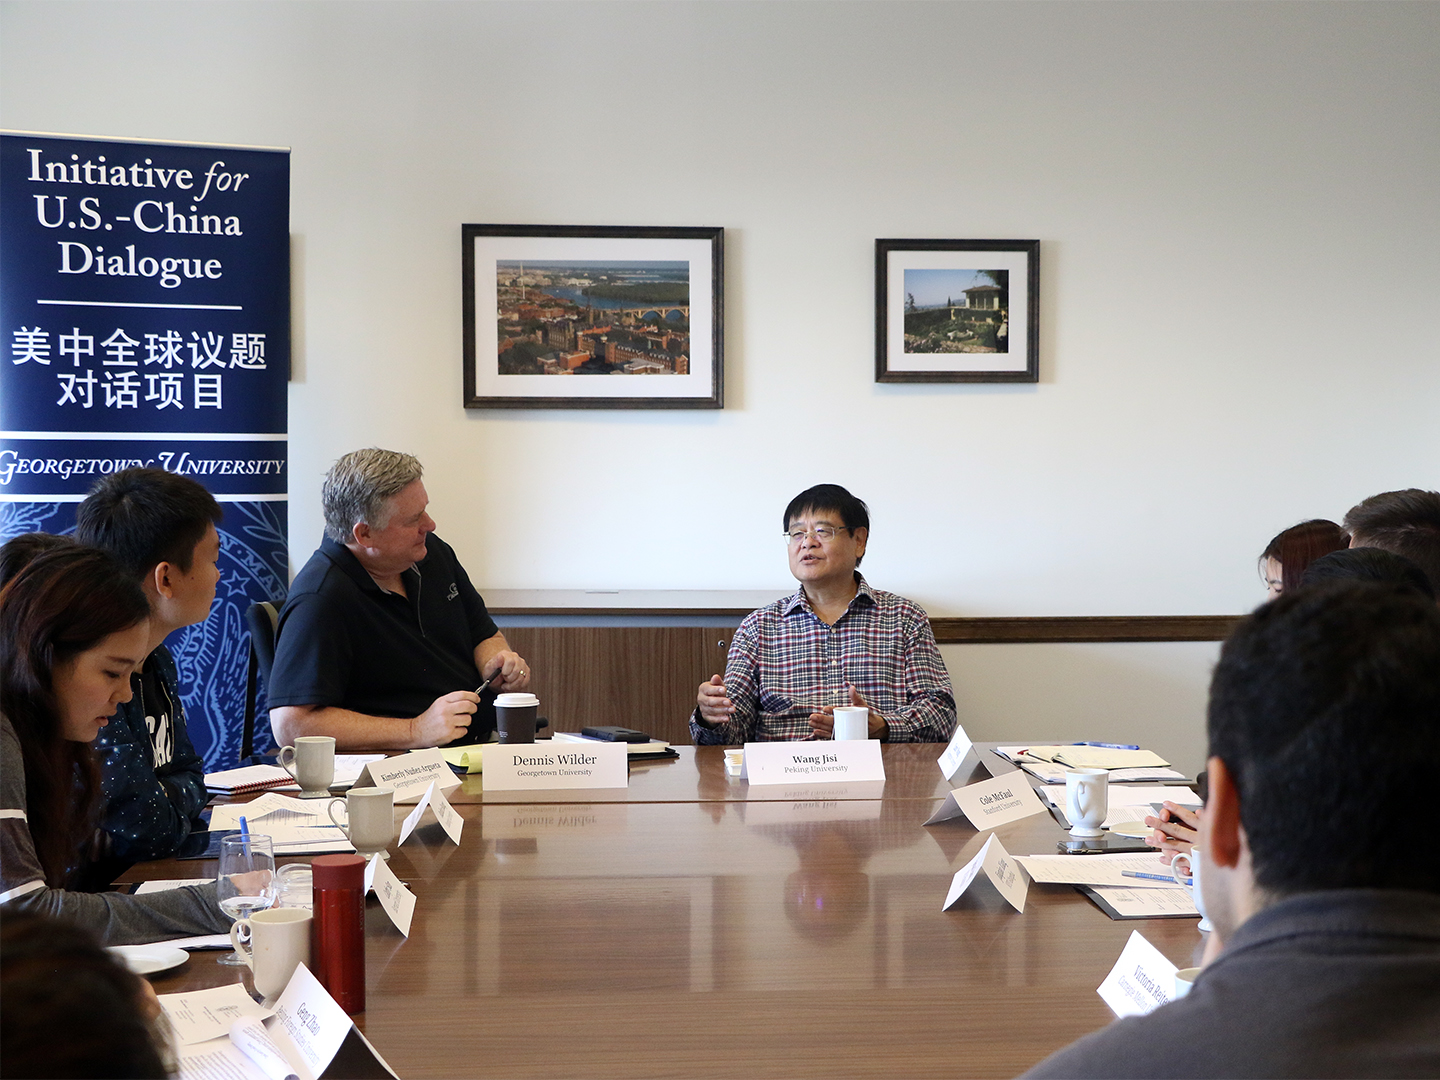 Wang Jisi discussing his views on U.S.-China relations with the Student Fellows